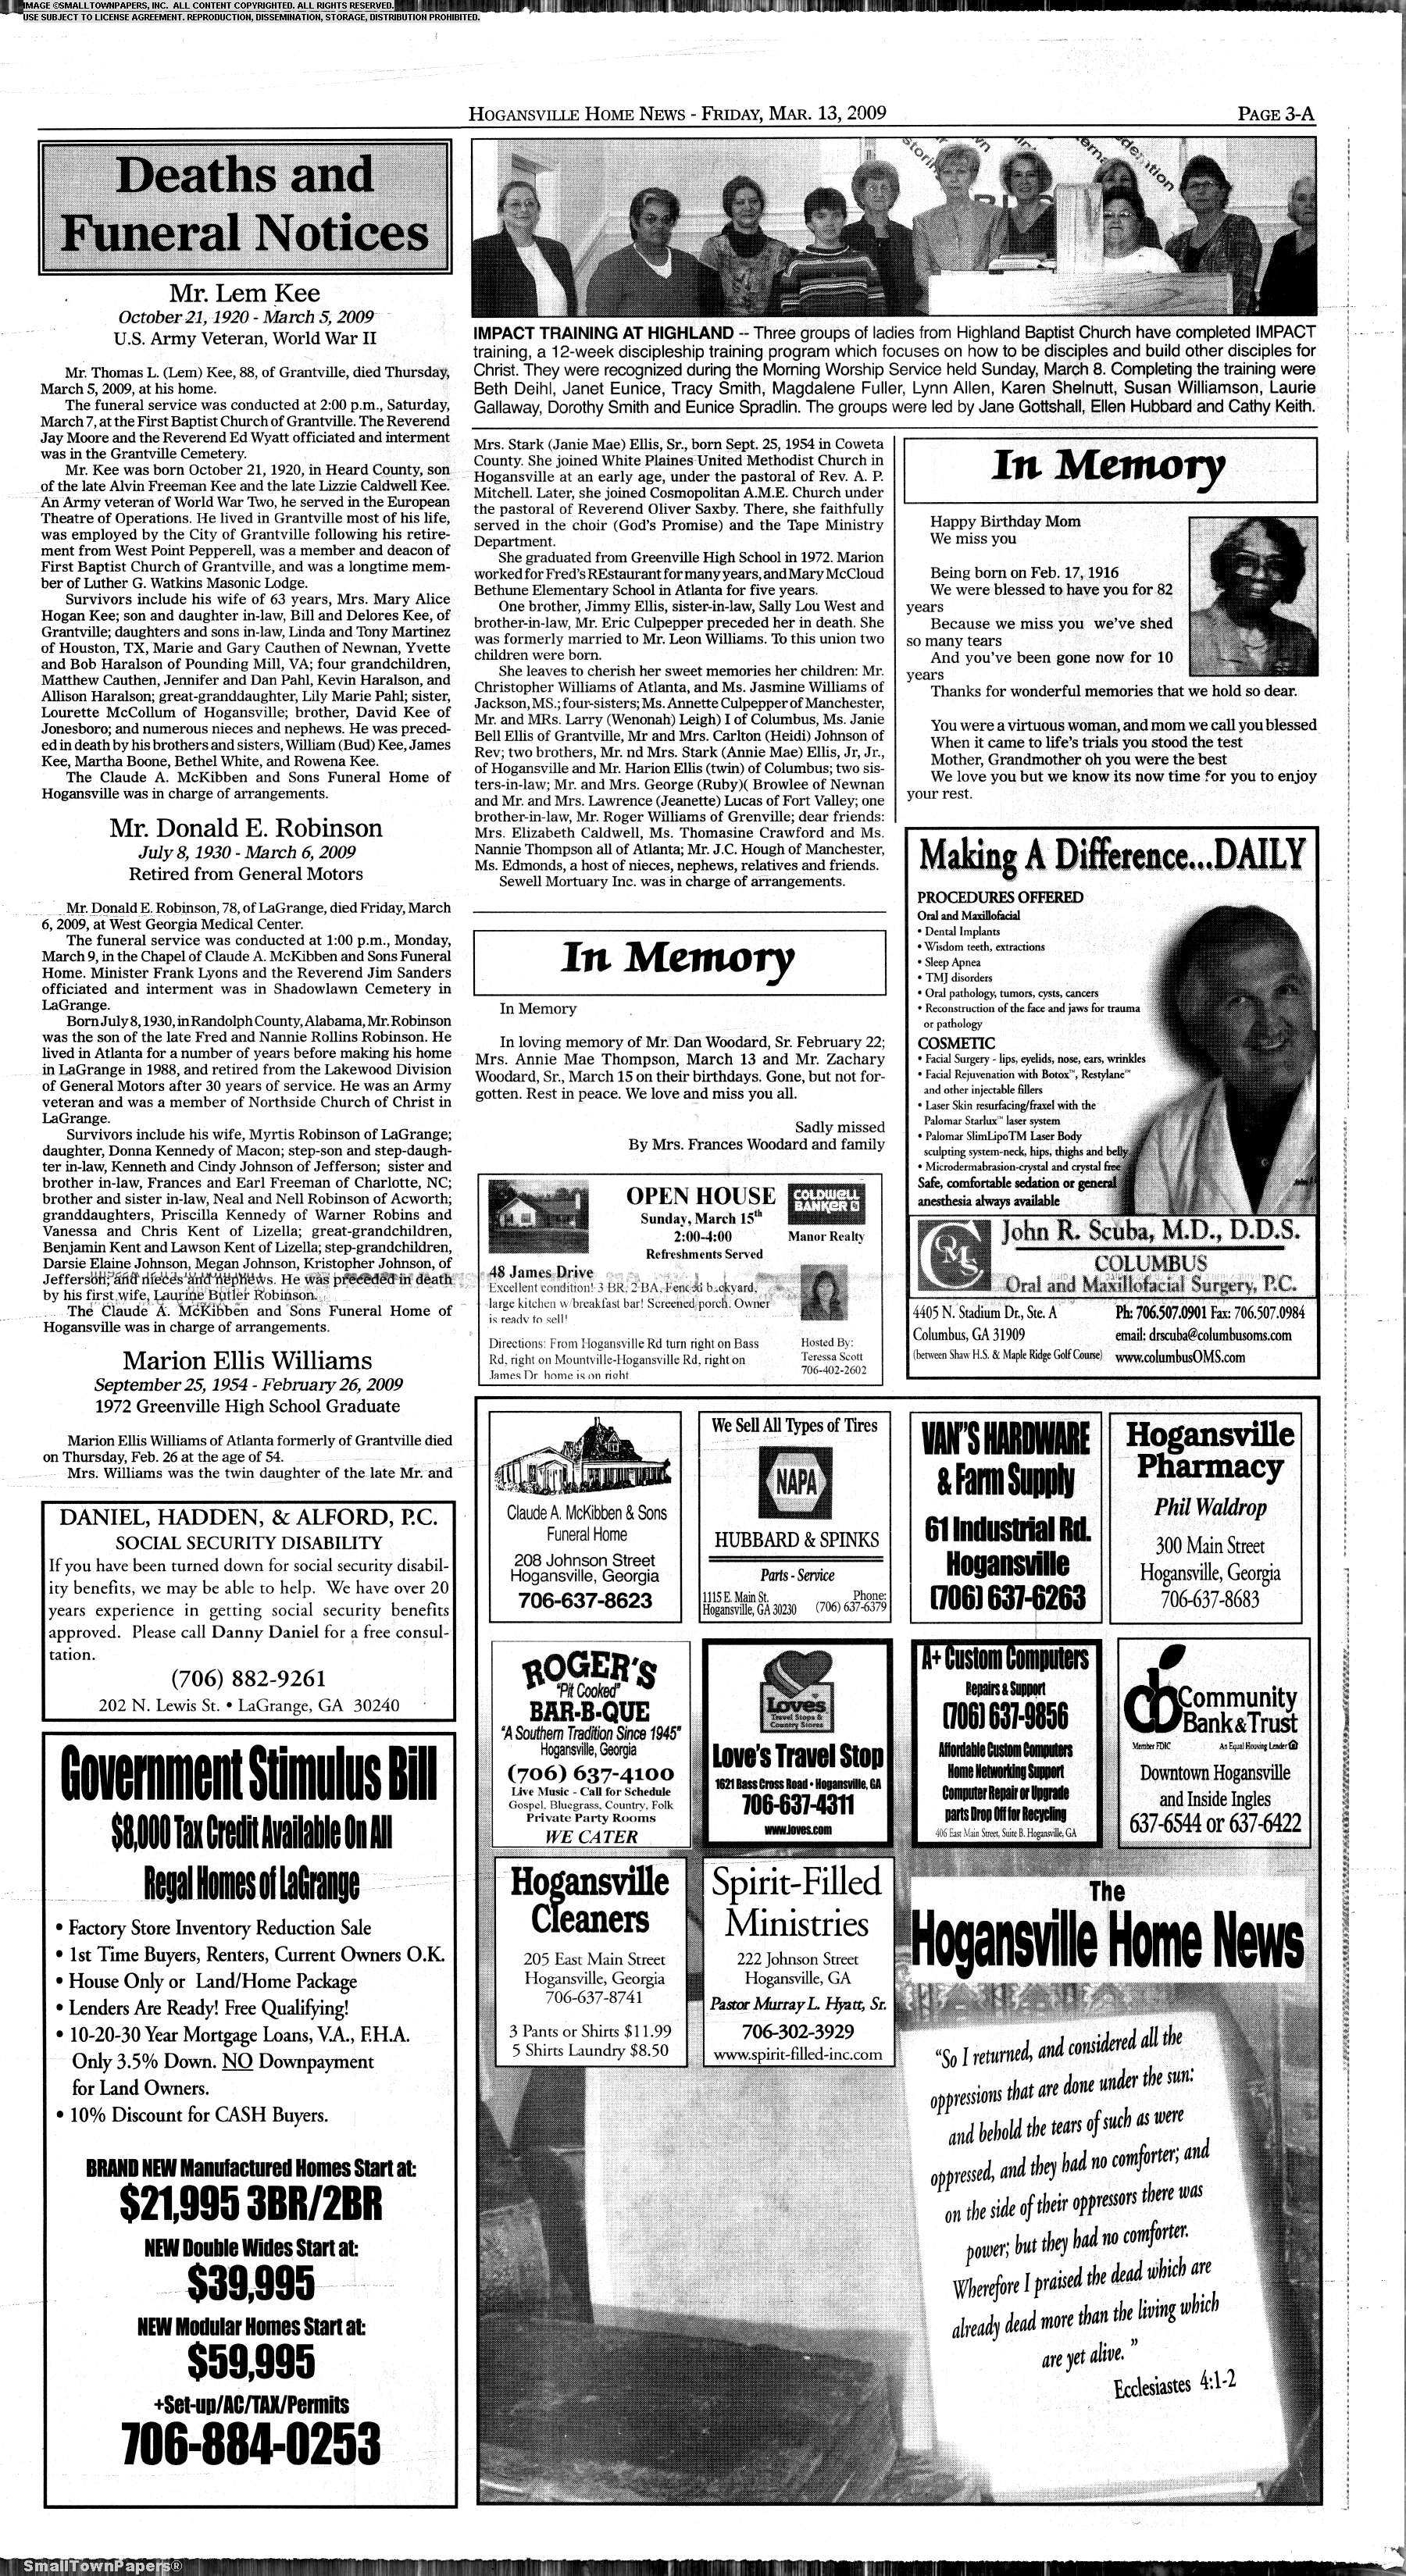 The Hogansville Herald March 13, 2009: Page 3